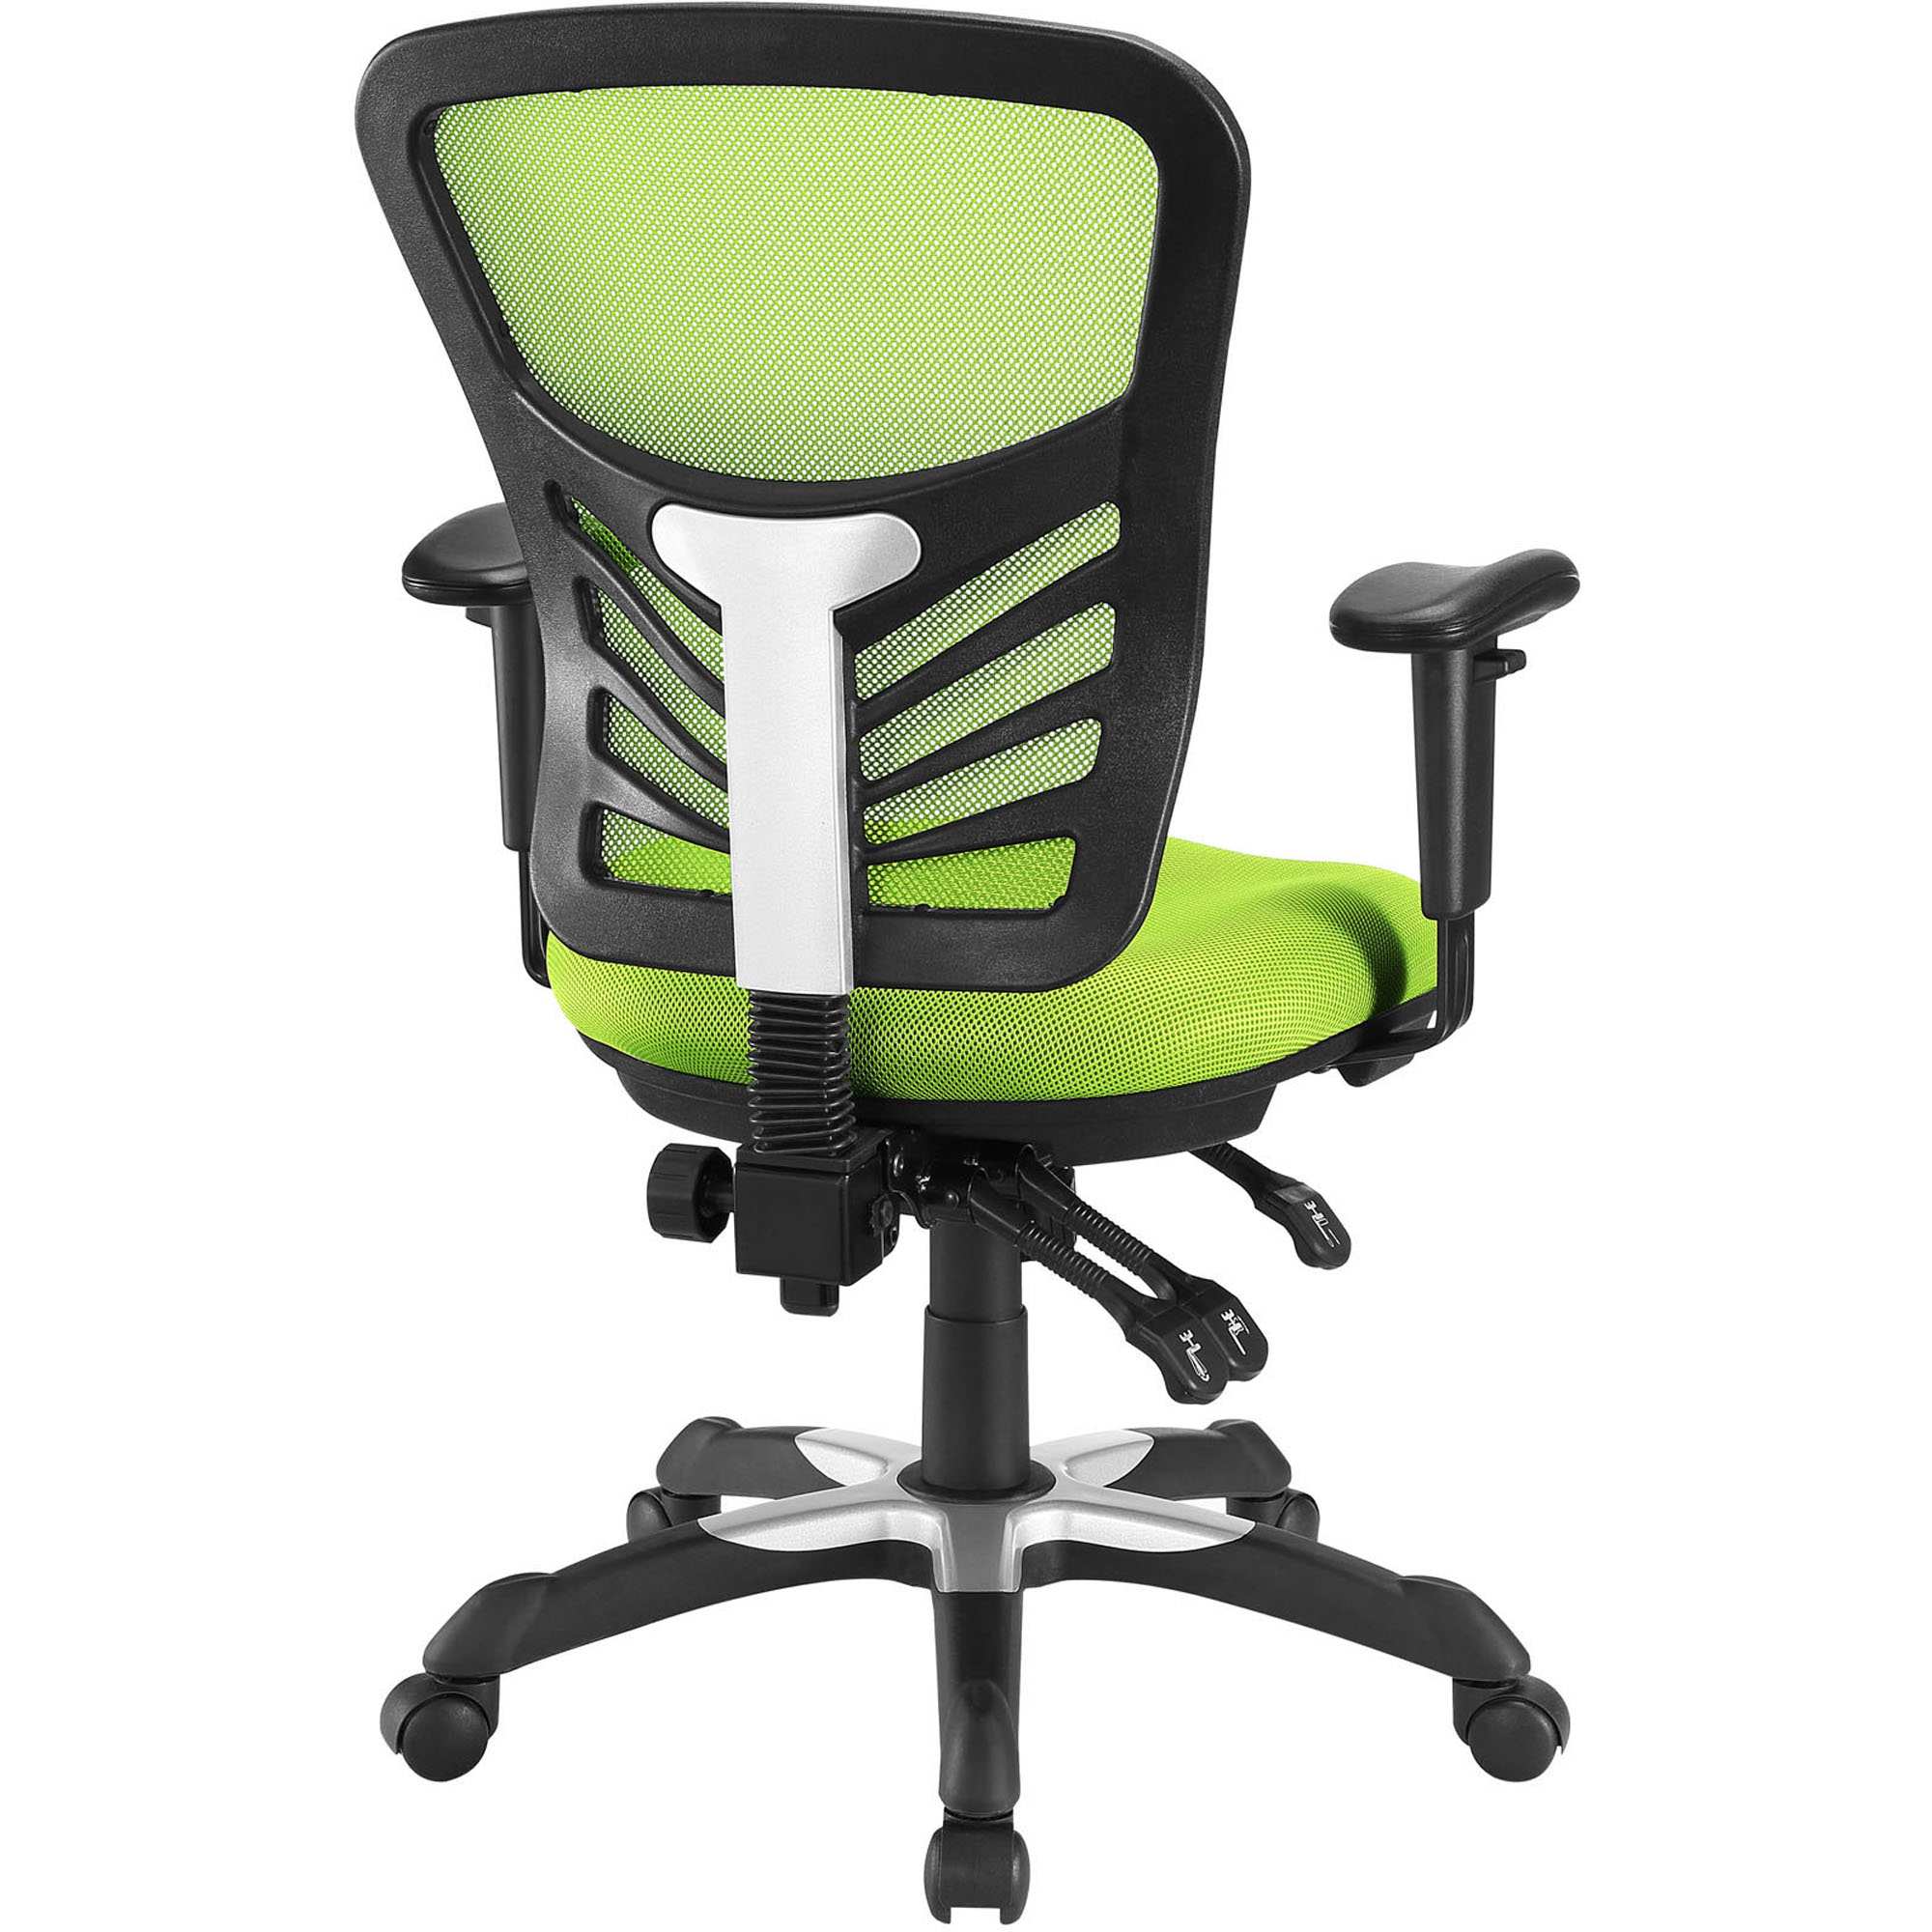 Modway Articulate Mesh Back and Seat fice Chair Multiple Colors